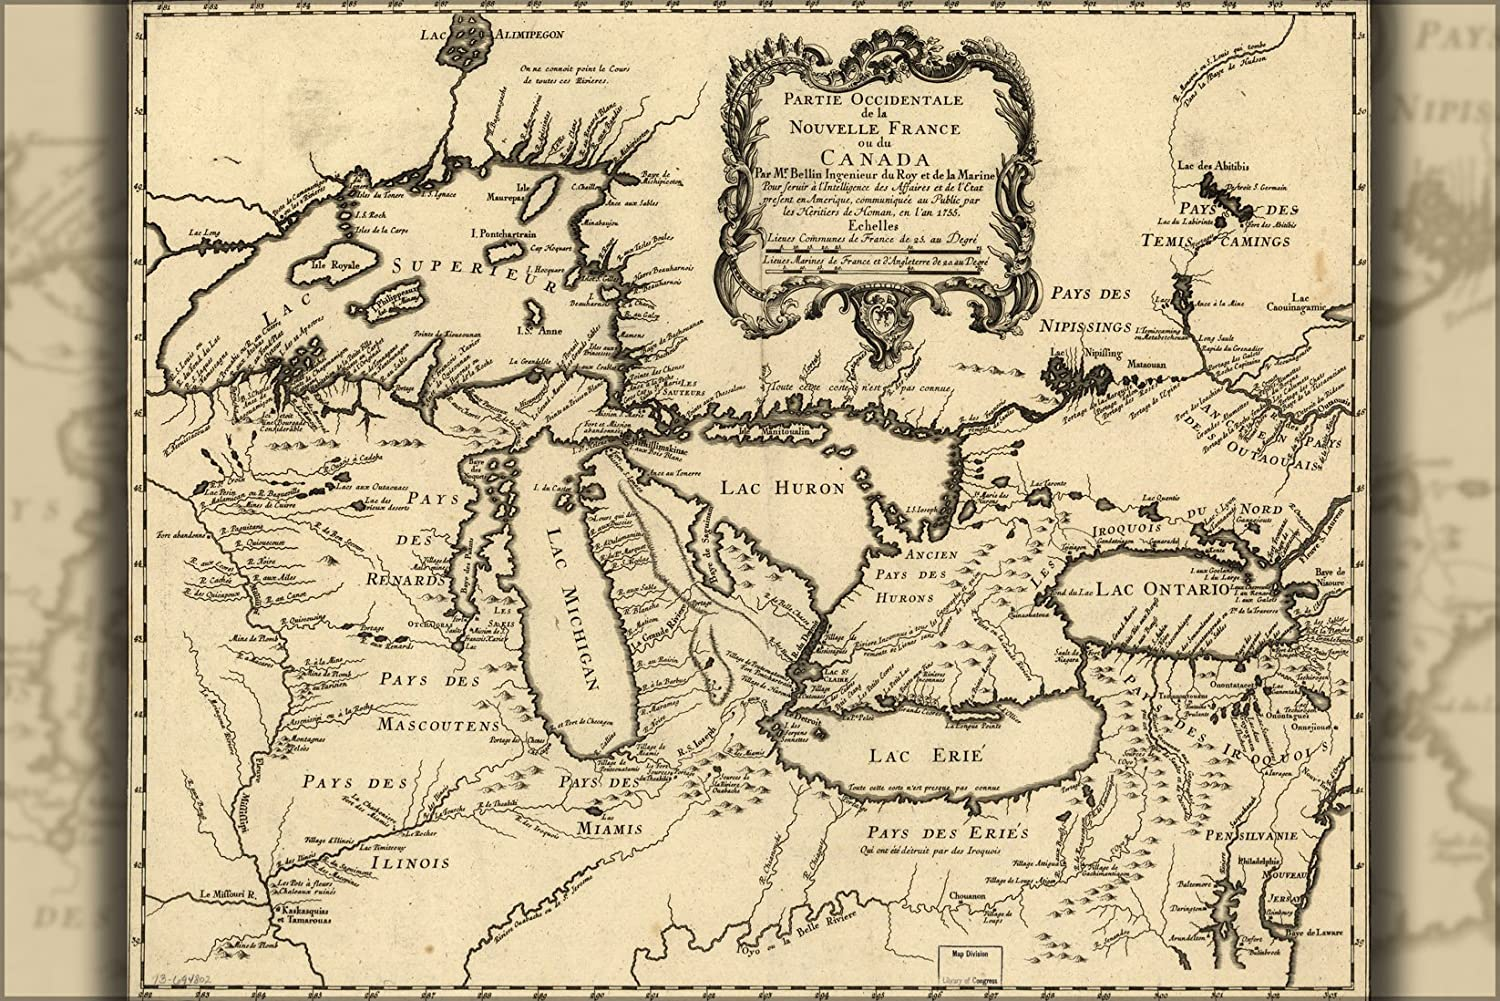 24x36 Poster; Map Of Michigan Great Lakes 1755 P2 In French; Antique Reprint